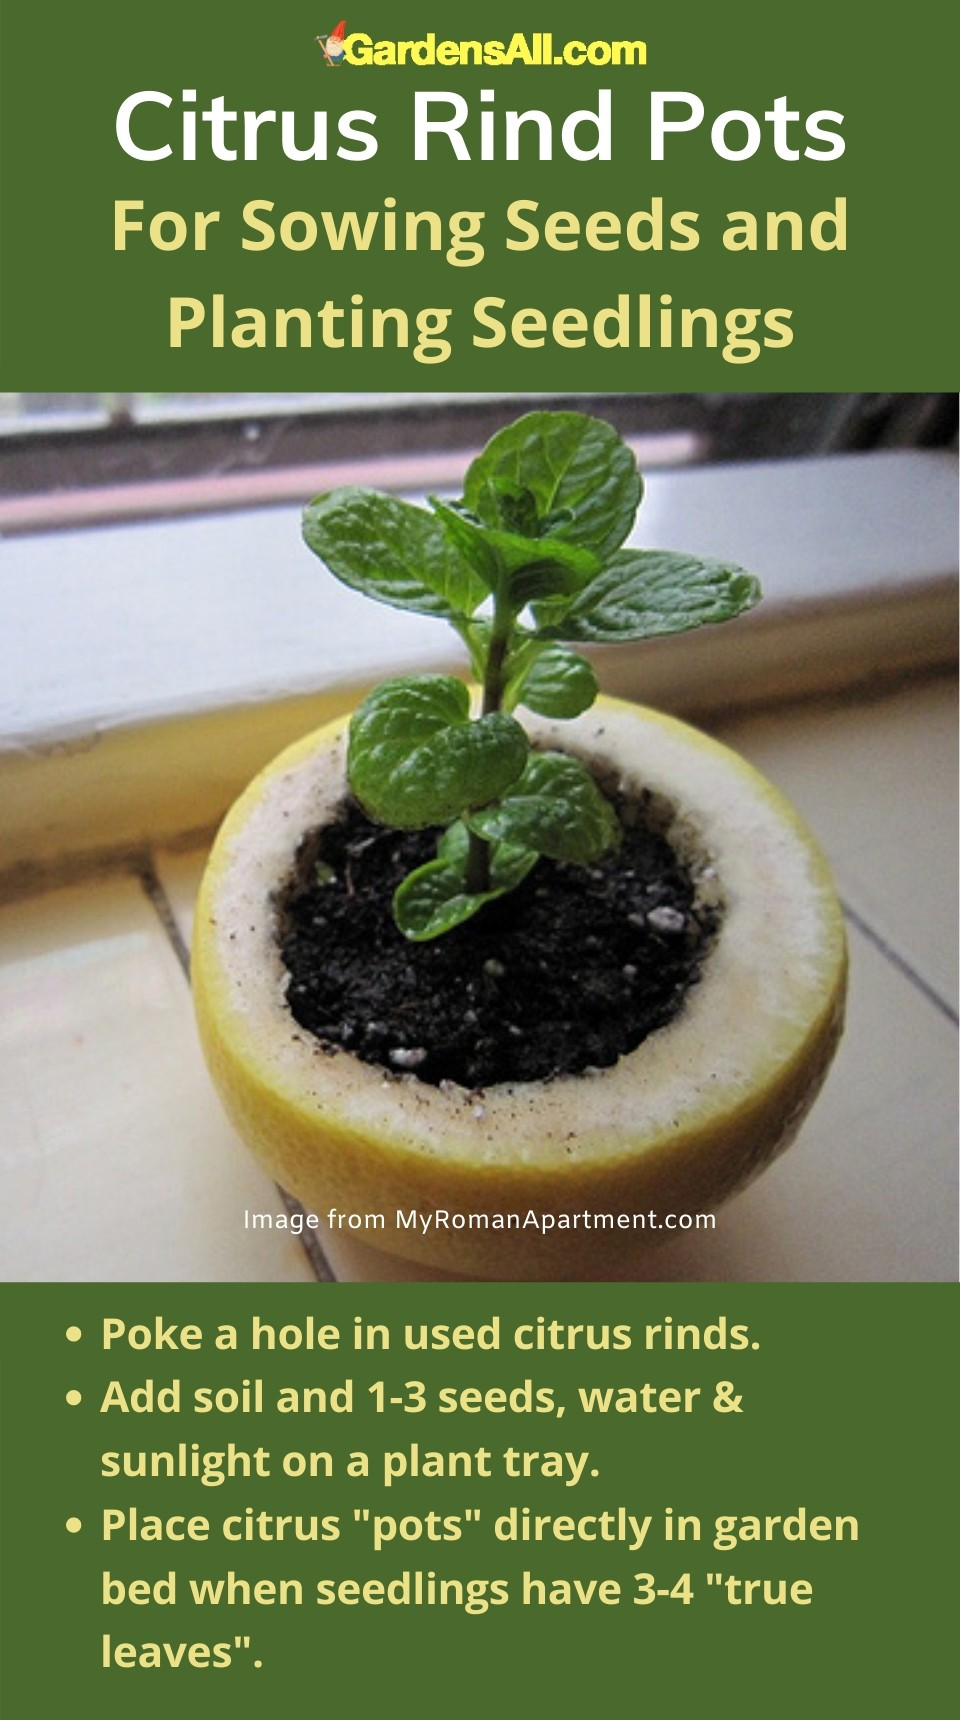 Citrus Rind Pots for Sowing Seeds and Planting Seedlings #IndoorGarden #Planters #GardenIdeas #GardenTips #GardenTools #ContainerGardening #Gardening